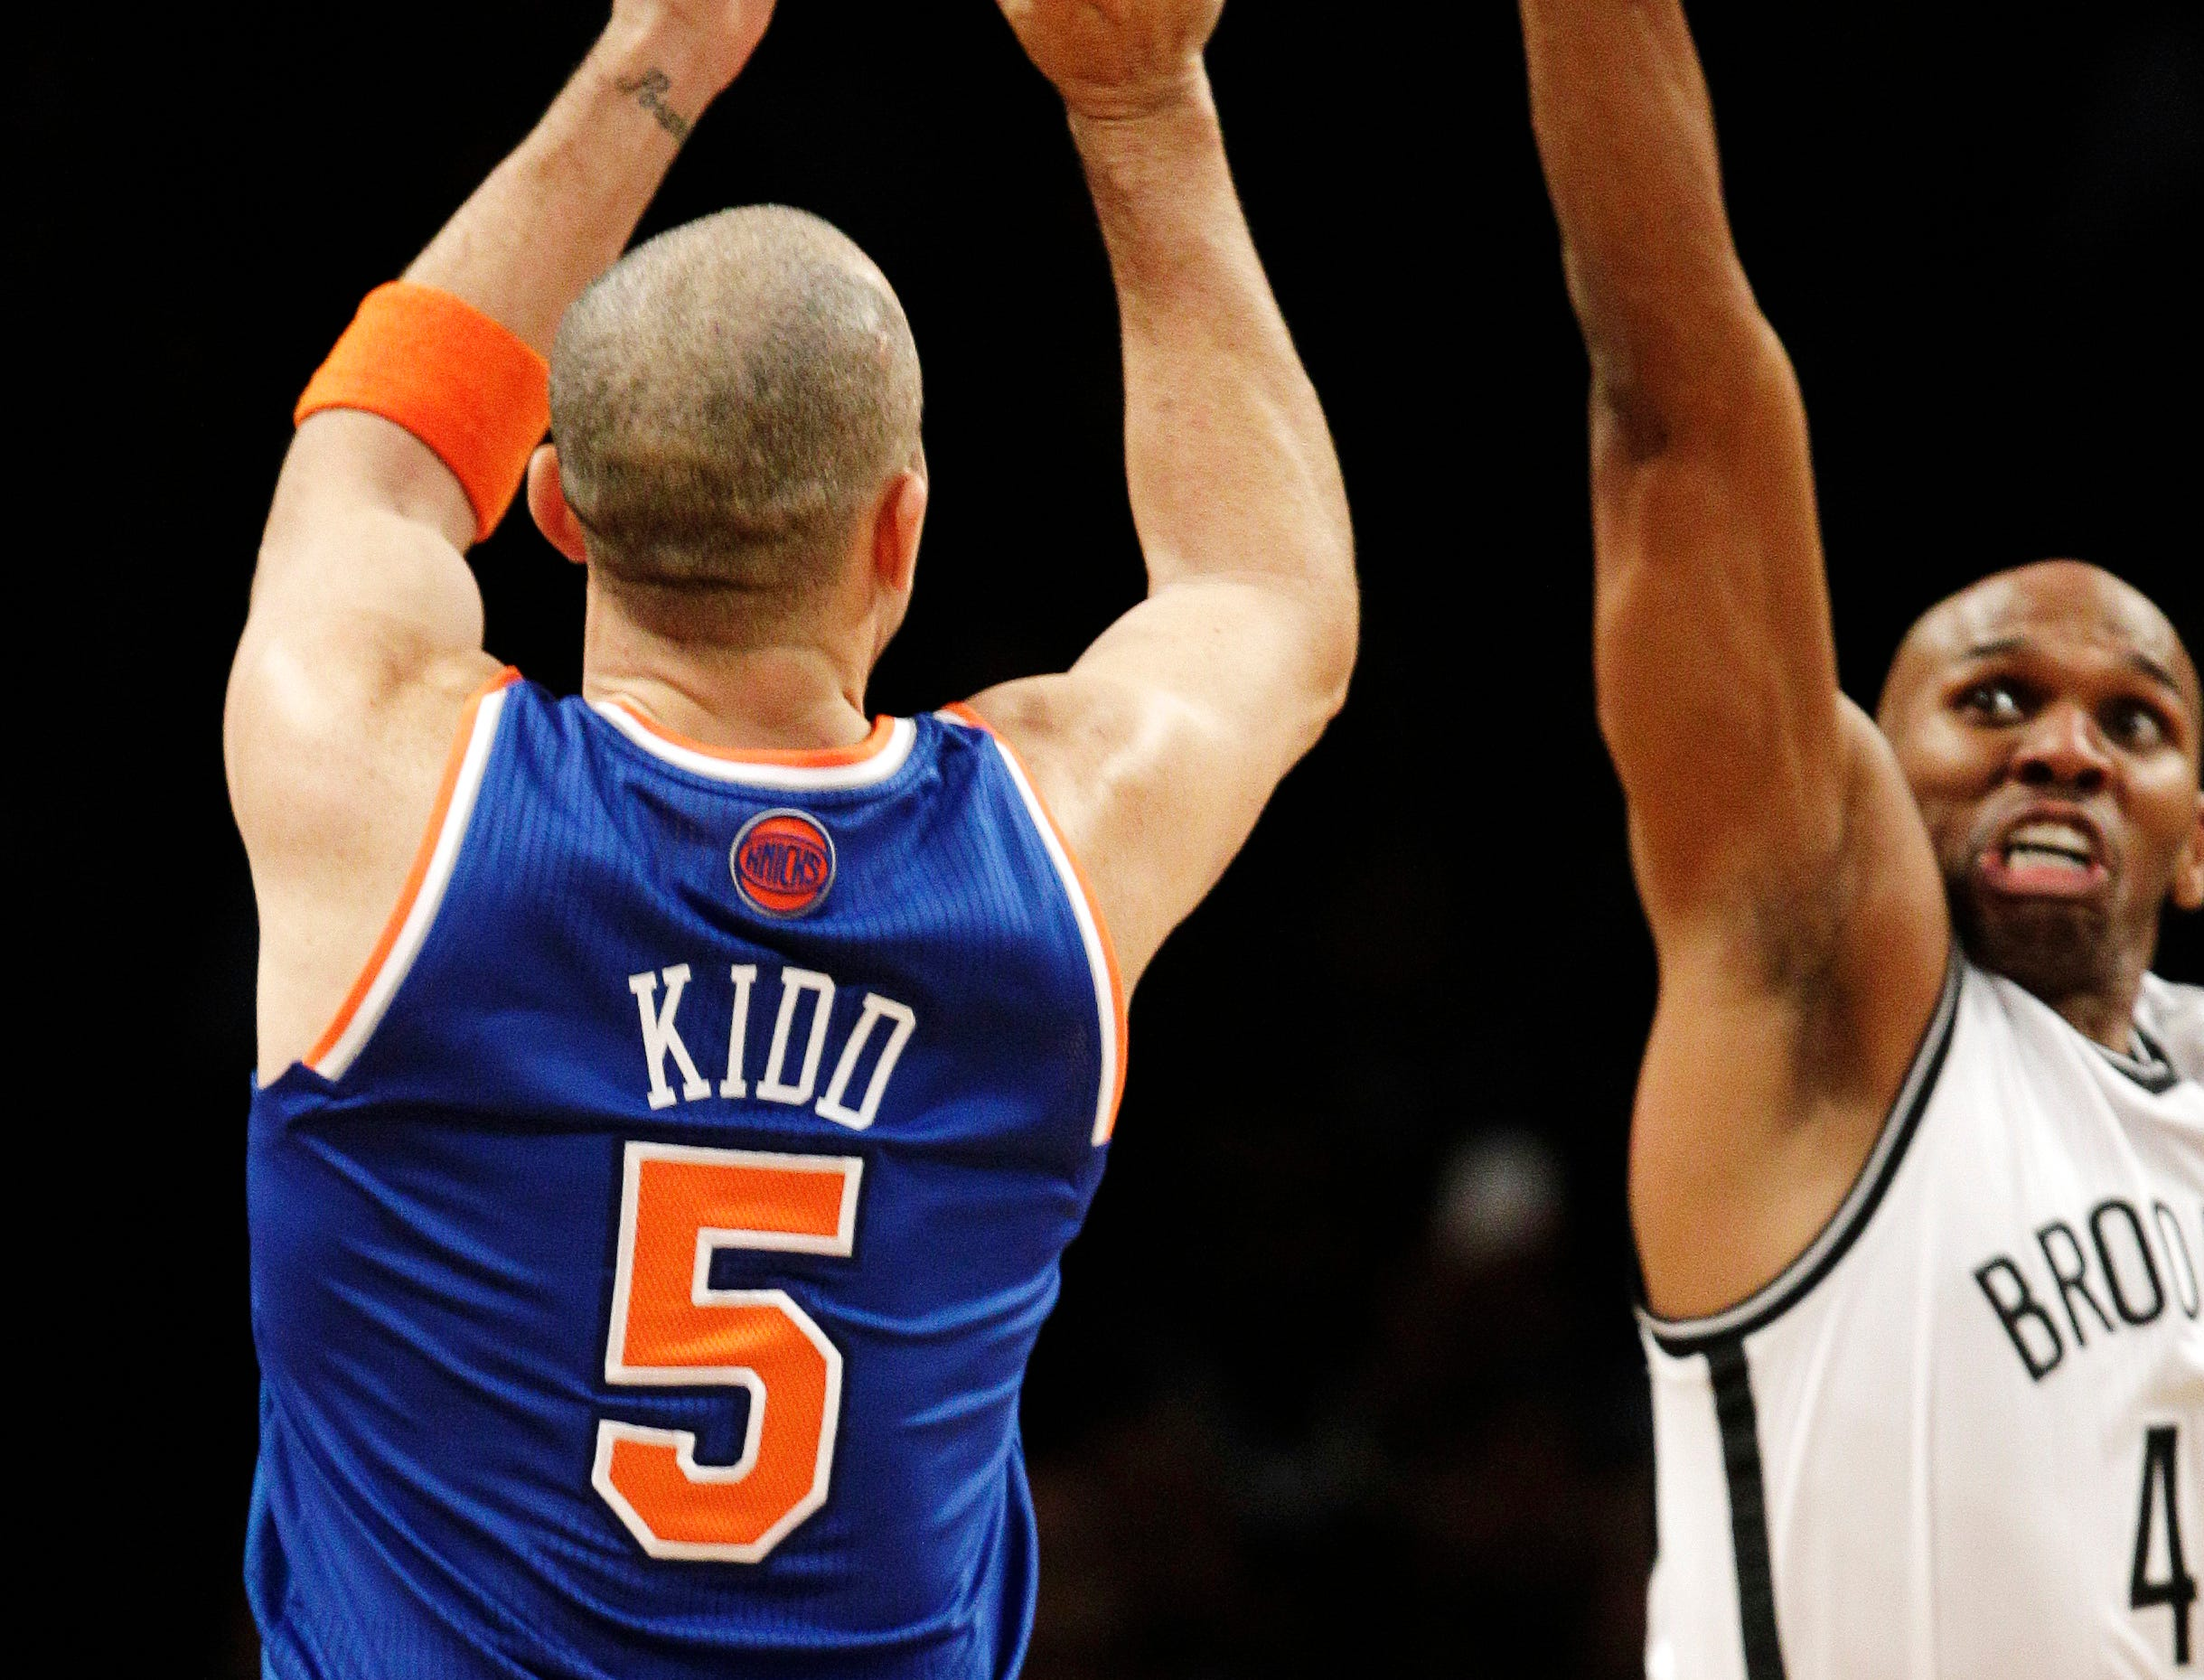 New York Knicks guard Jason Kidd (5) shoots a 3-pointer over Brooklyn Nets forward Jerry Stackhouse to lift the Knicks to a 100-97 win in their NBA basketball game at Barclays Center, Tuesday, Dec. 11, 2012, in New York.